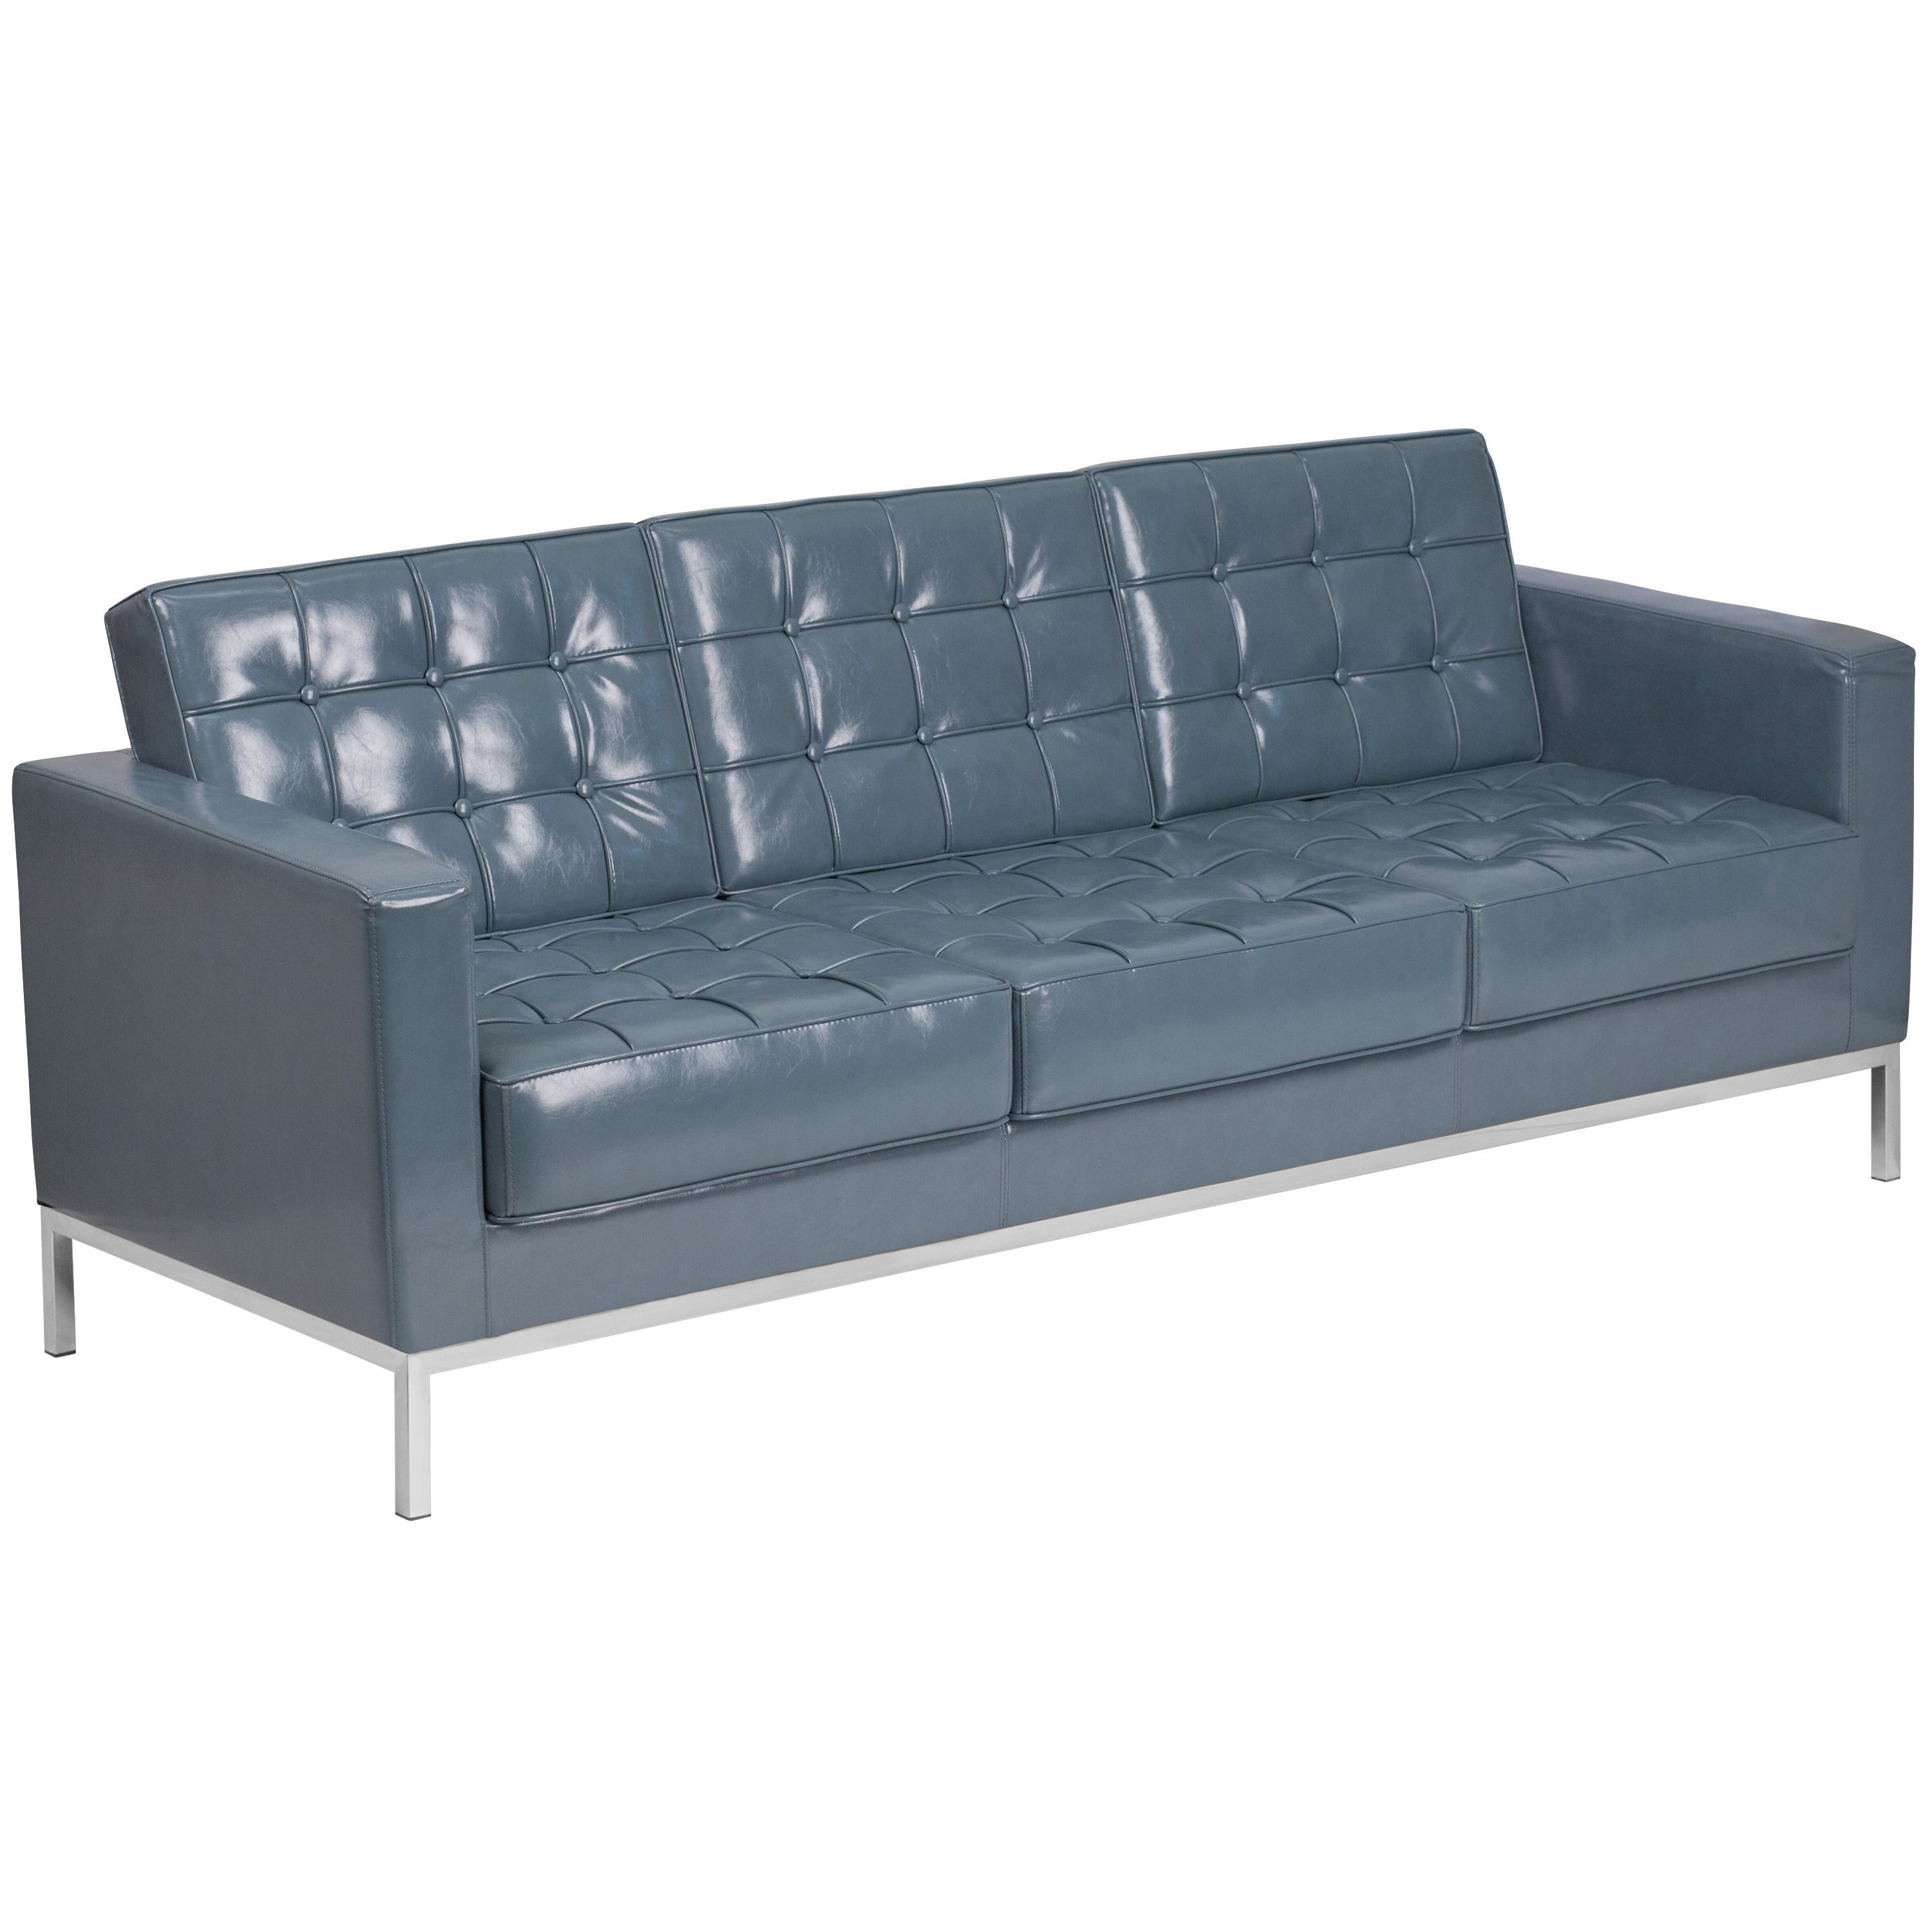 Clay Alder Home Ambador Contemporary Leather Sofa With Stainless Steel Frame Free Shipping Today 14012249